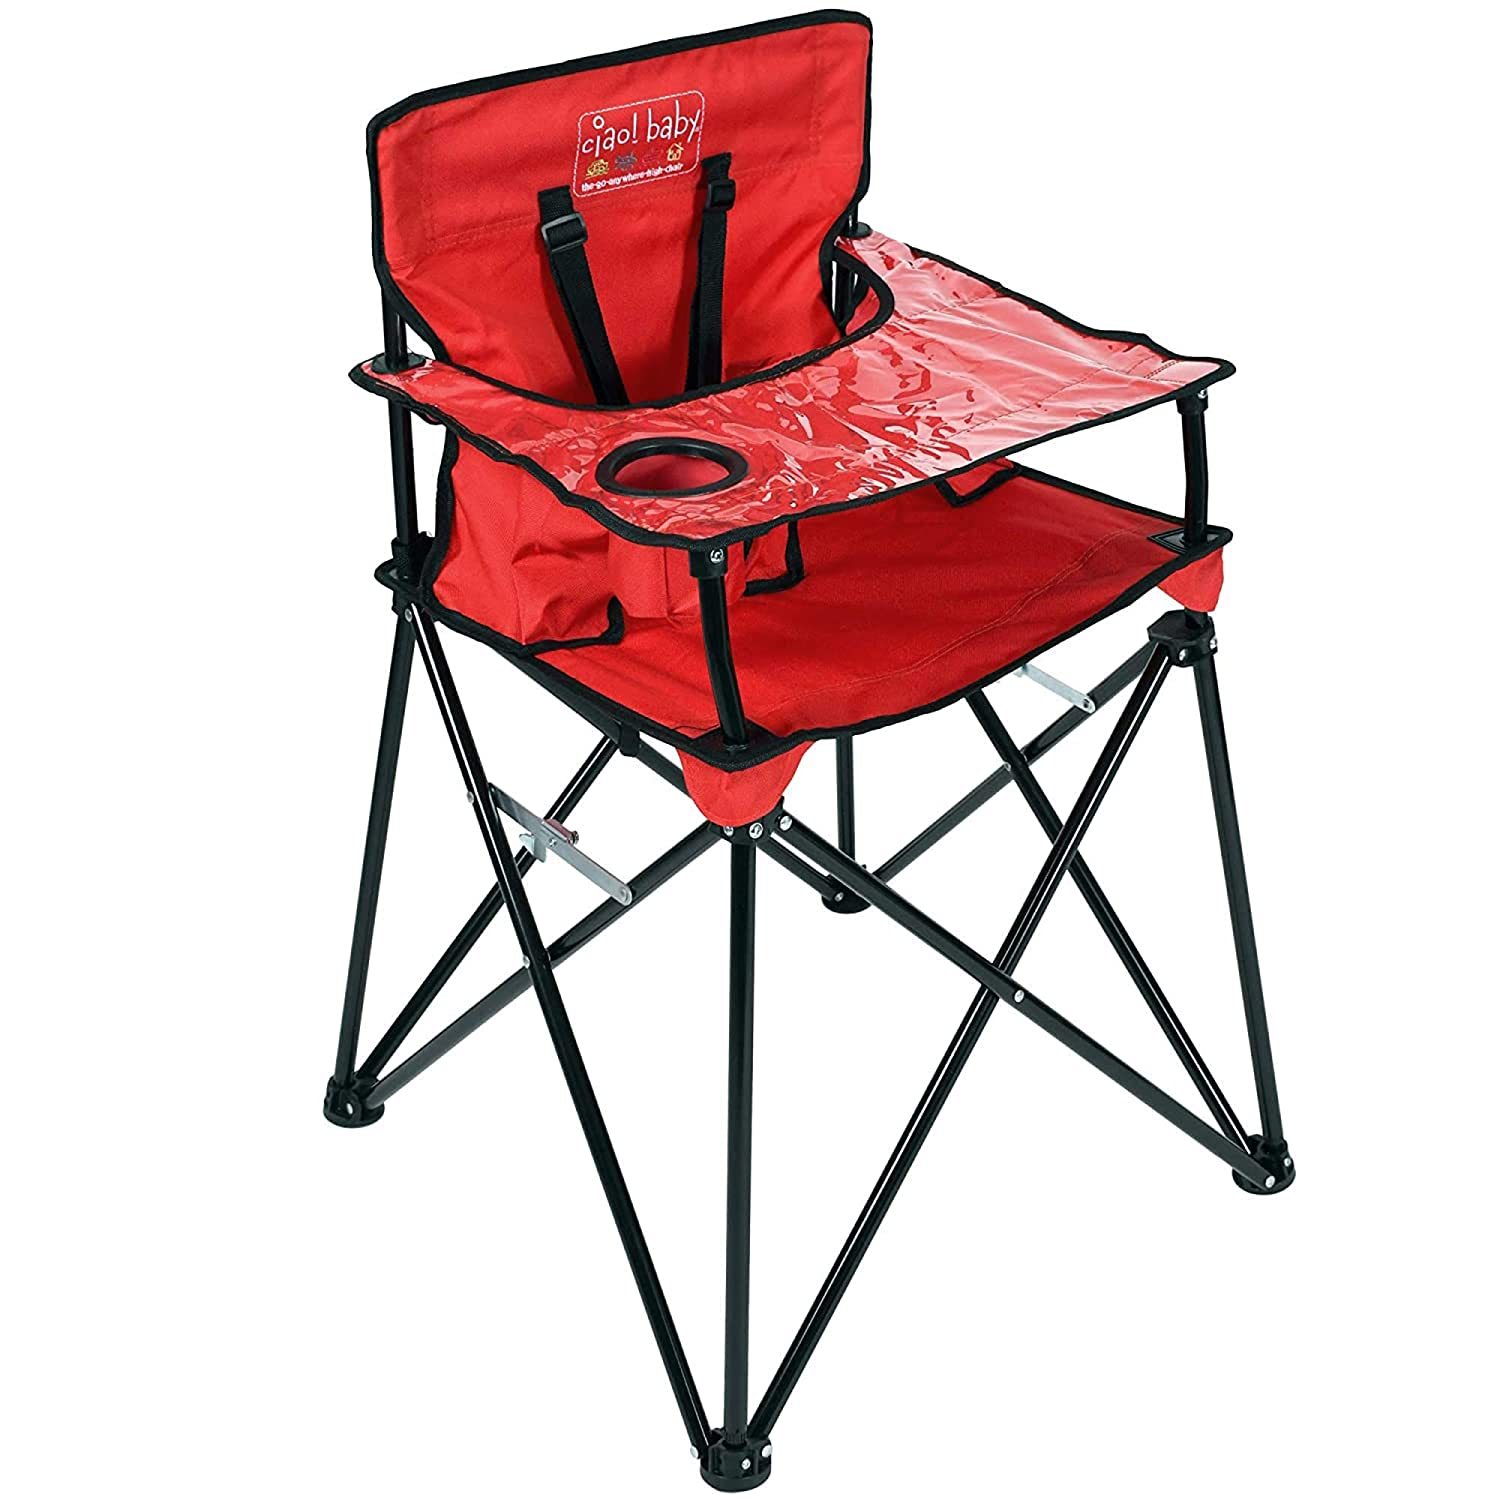 Amazon.com : ciao! baby Portable High Chair for Babies and Toddlers, Fold  Up Outdoor Travel Seat with Tray and Carry Bag for Camping, Picnics, Beach  Days, Sporting Events, and More (Red) :